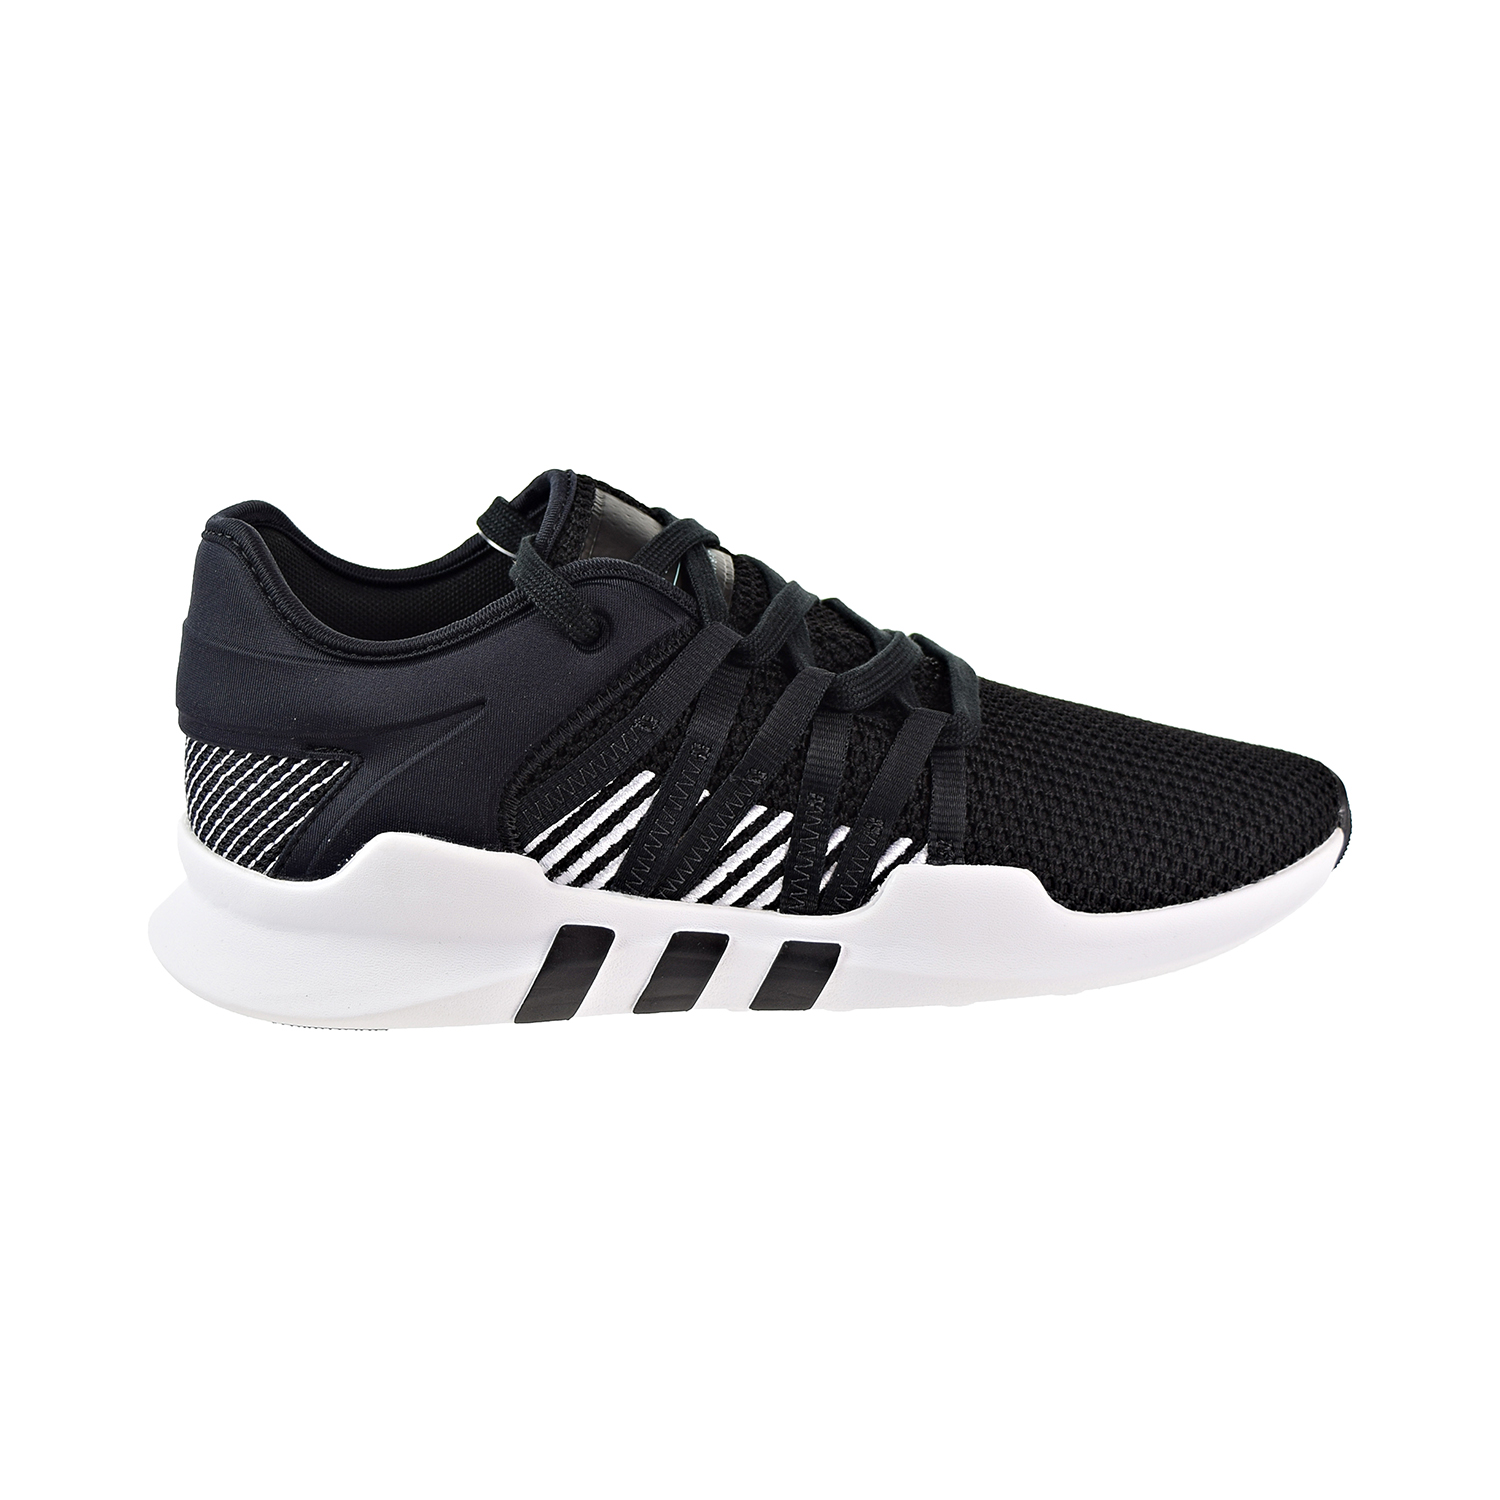 the latest 25c53 7a255 Details about Adidas EQT Racing ADV Womens' Shoes Core Black/Core  Black/Fooywear White by9795